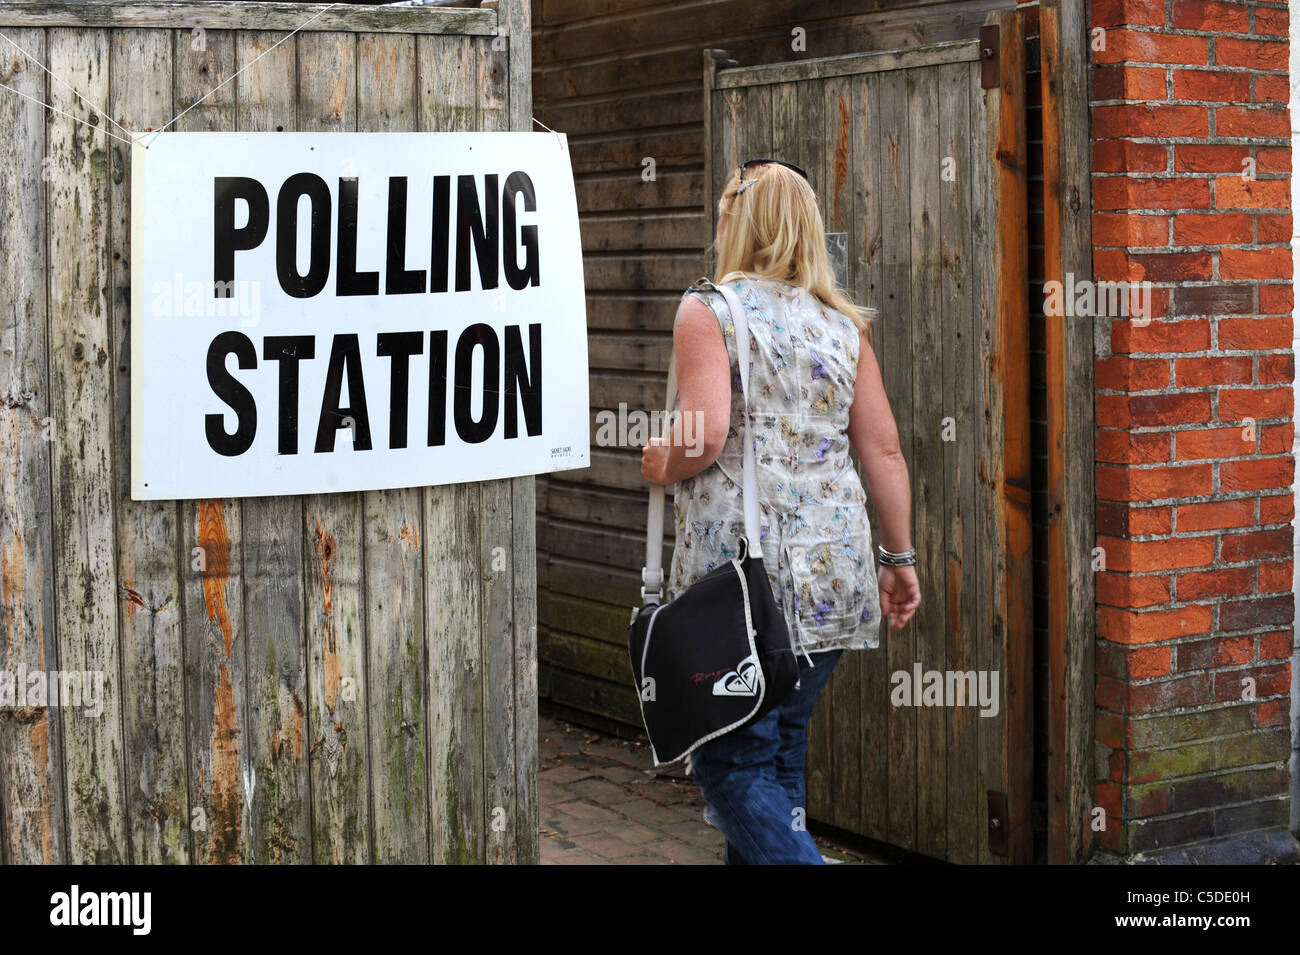 A woman walks into a Polling Station to vote in the 2011 Local Elections - Stock Image